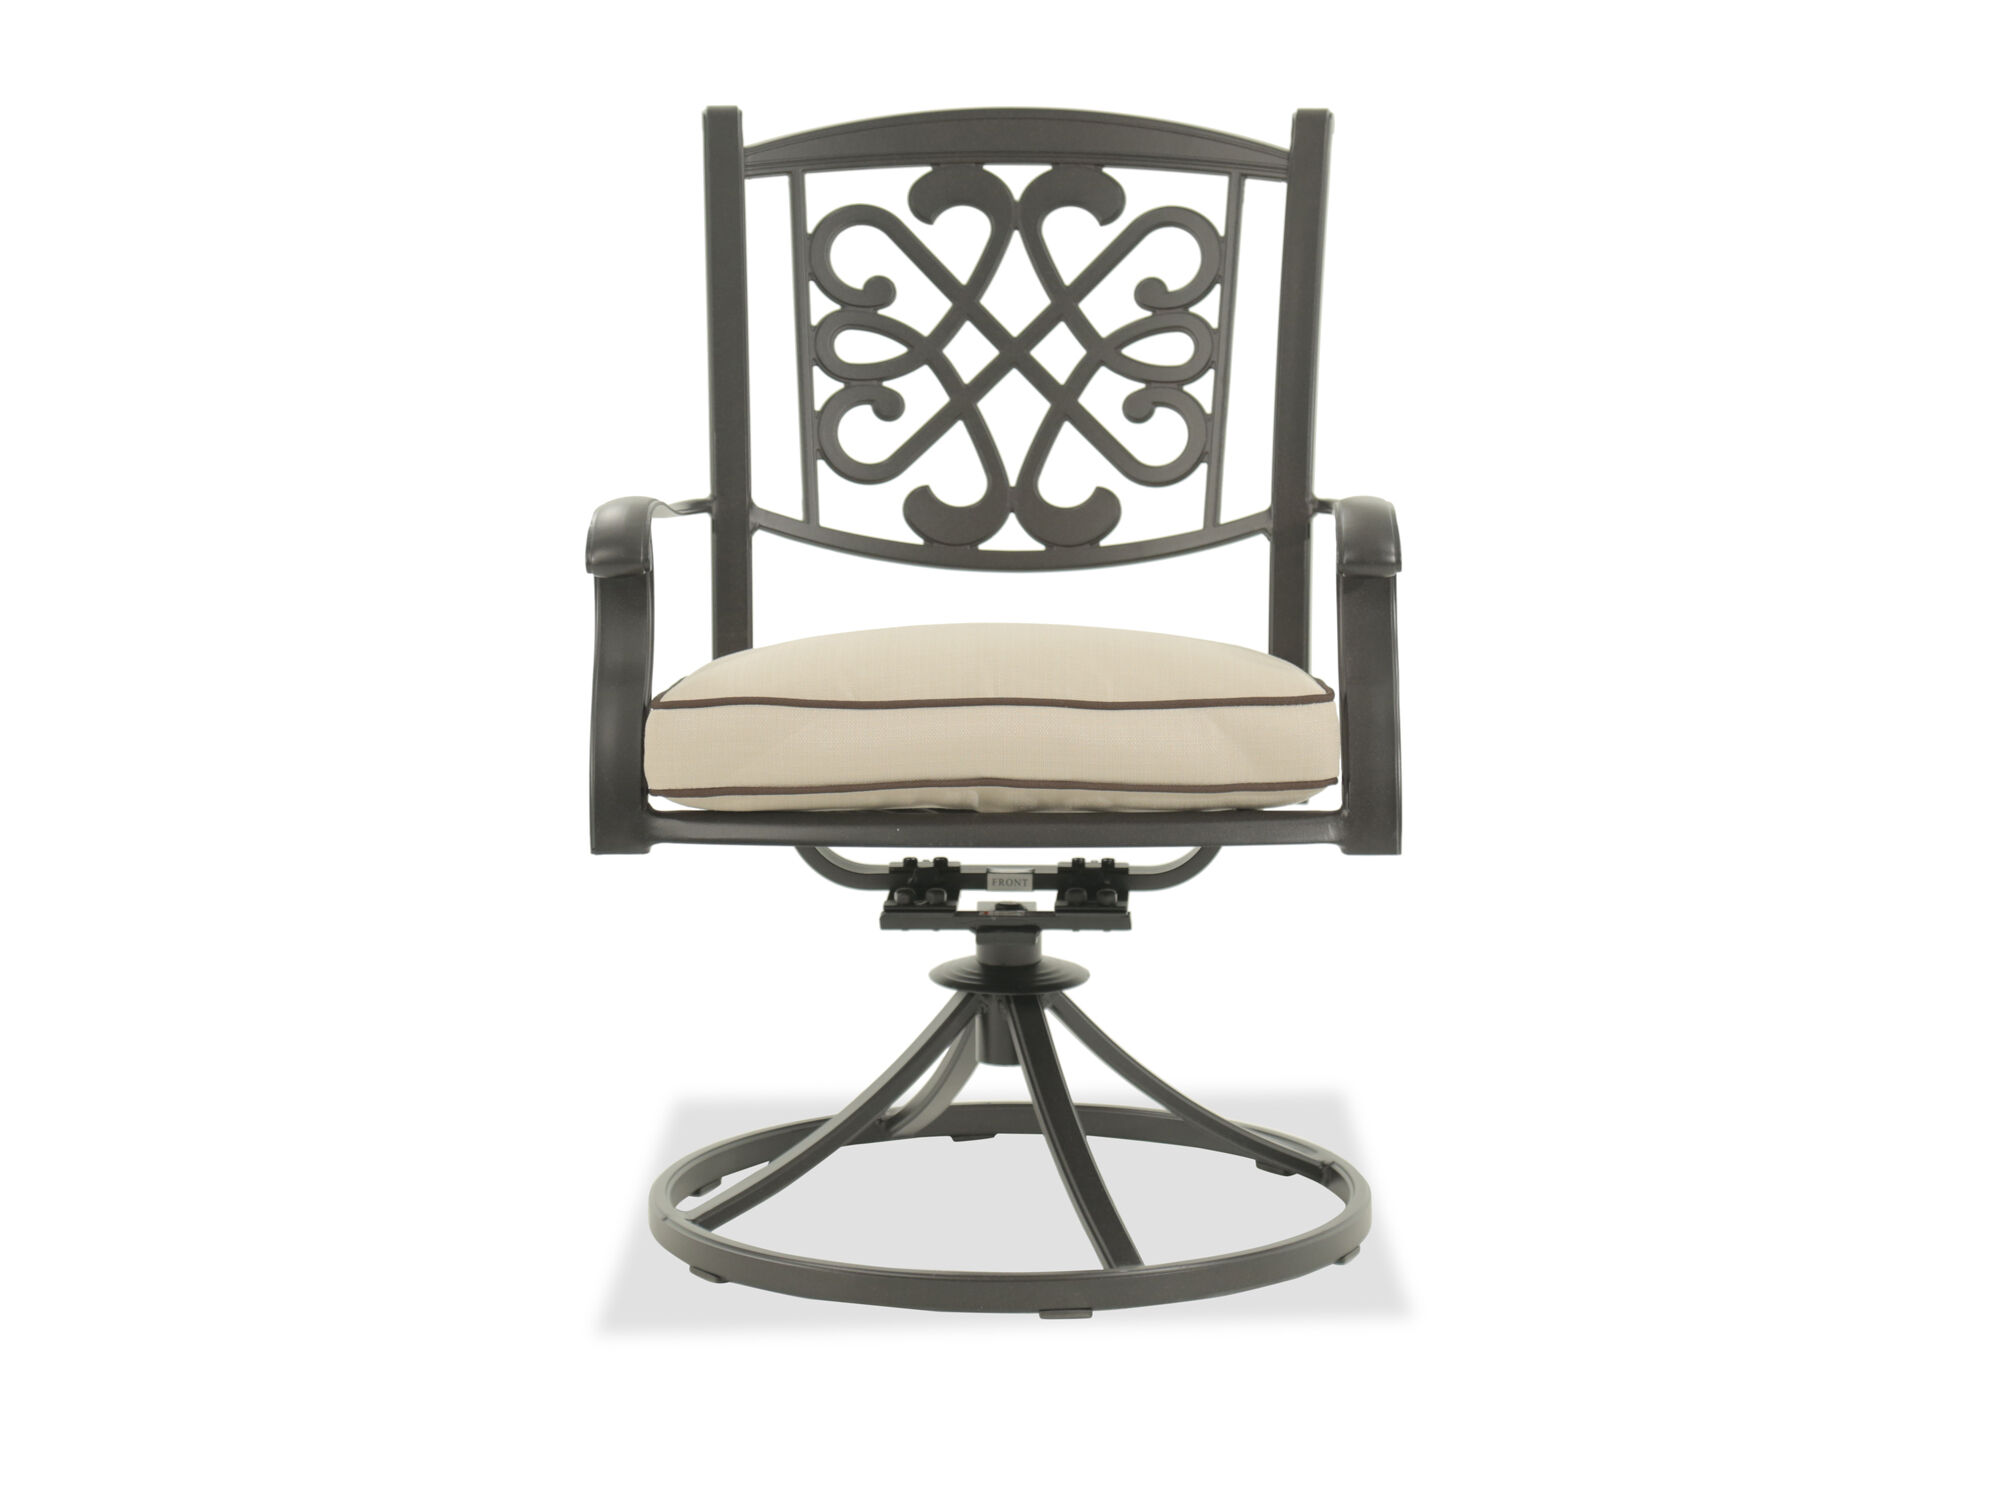 metal outdoor chair kidkraft table and chairs white patio seating mathis brothers scrollwork aluminum swivel in dark brown